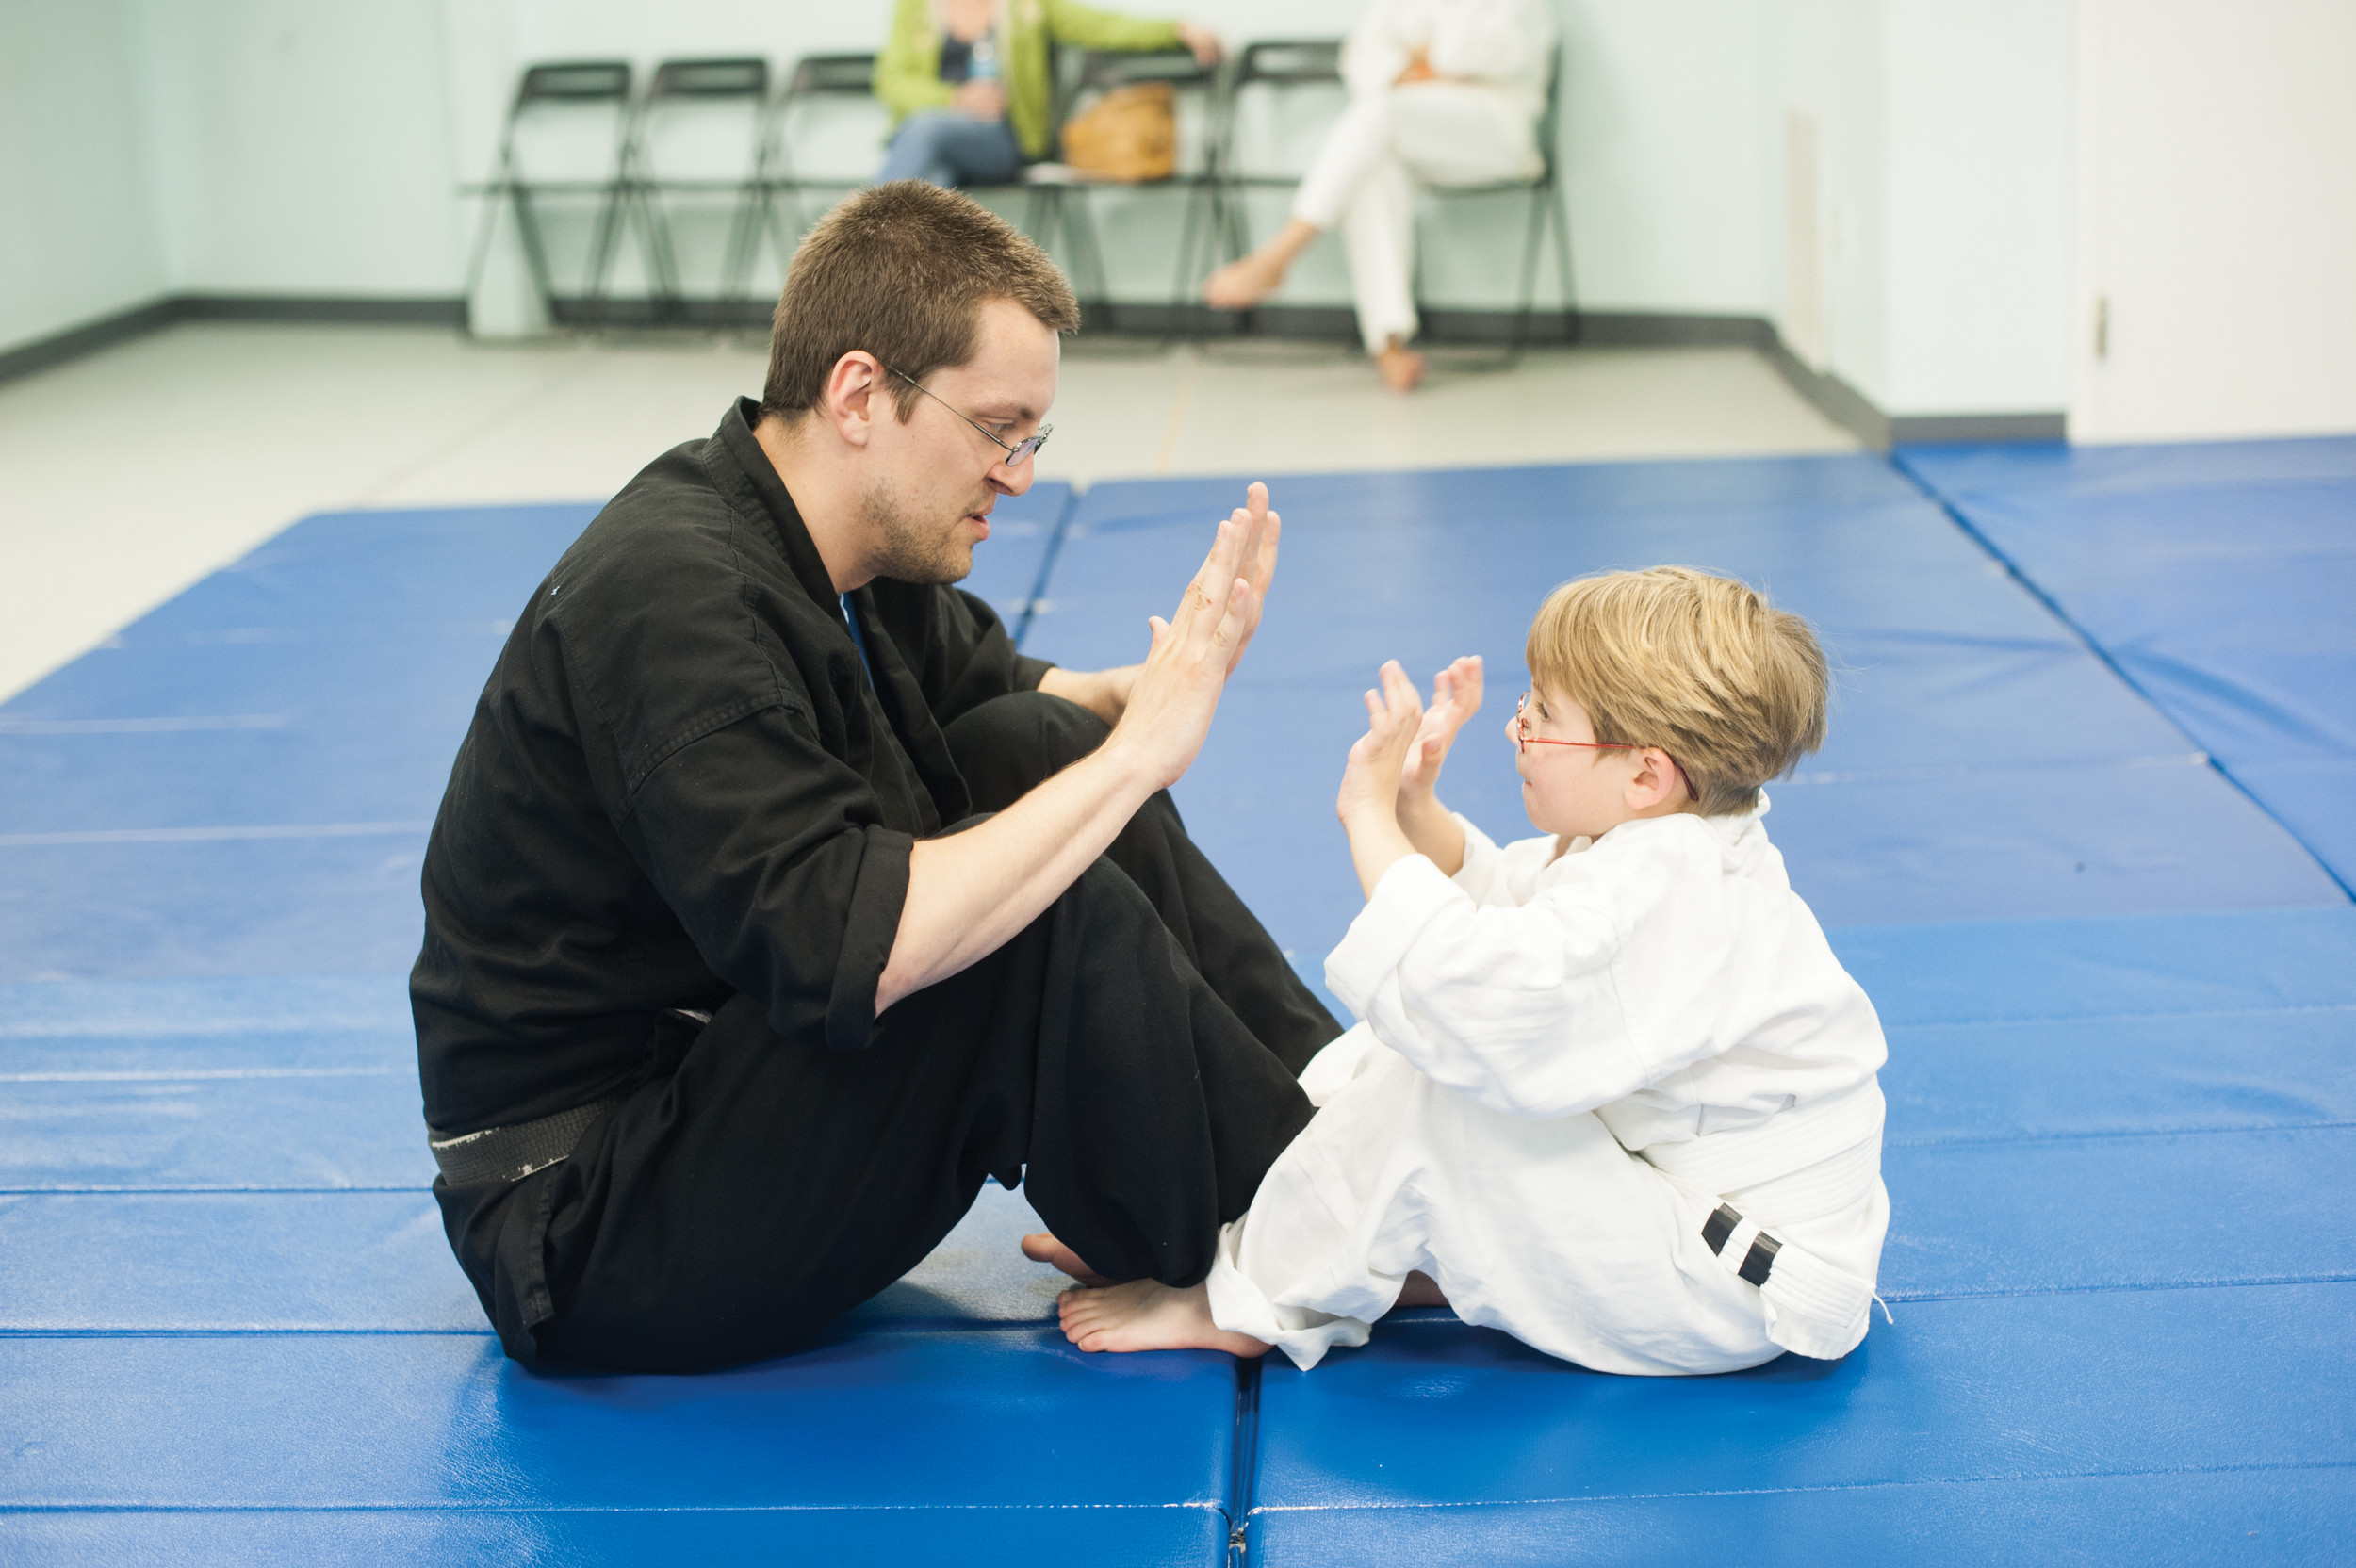 Robert Ingram (pictured with Elliot Beckhart), who was bullied as a child, launched Alpha Dogs Martial Arts and said karate can give youngsters the confidence they need to avoid being bullied.